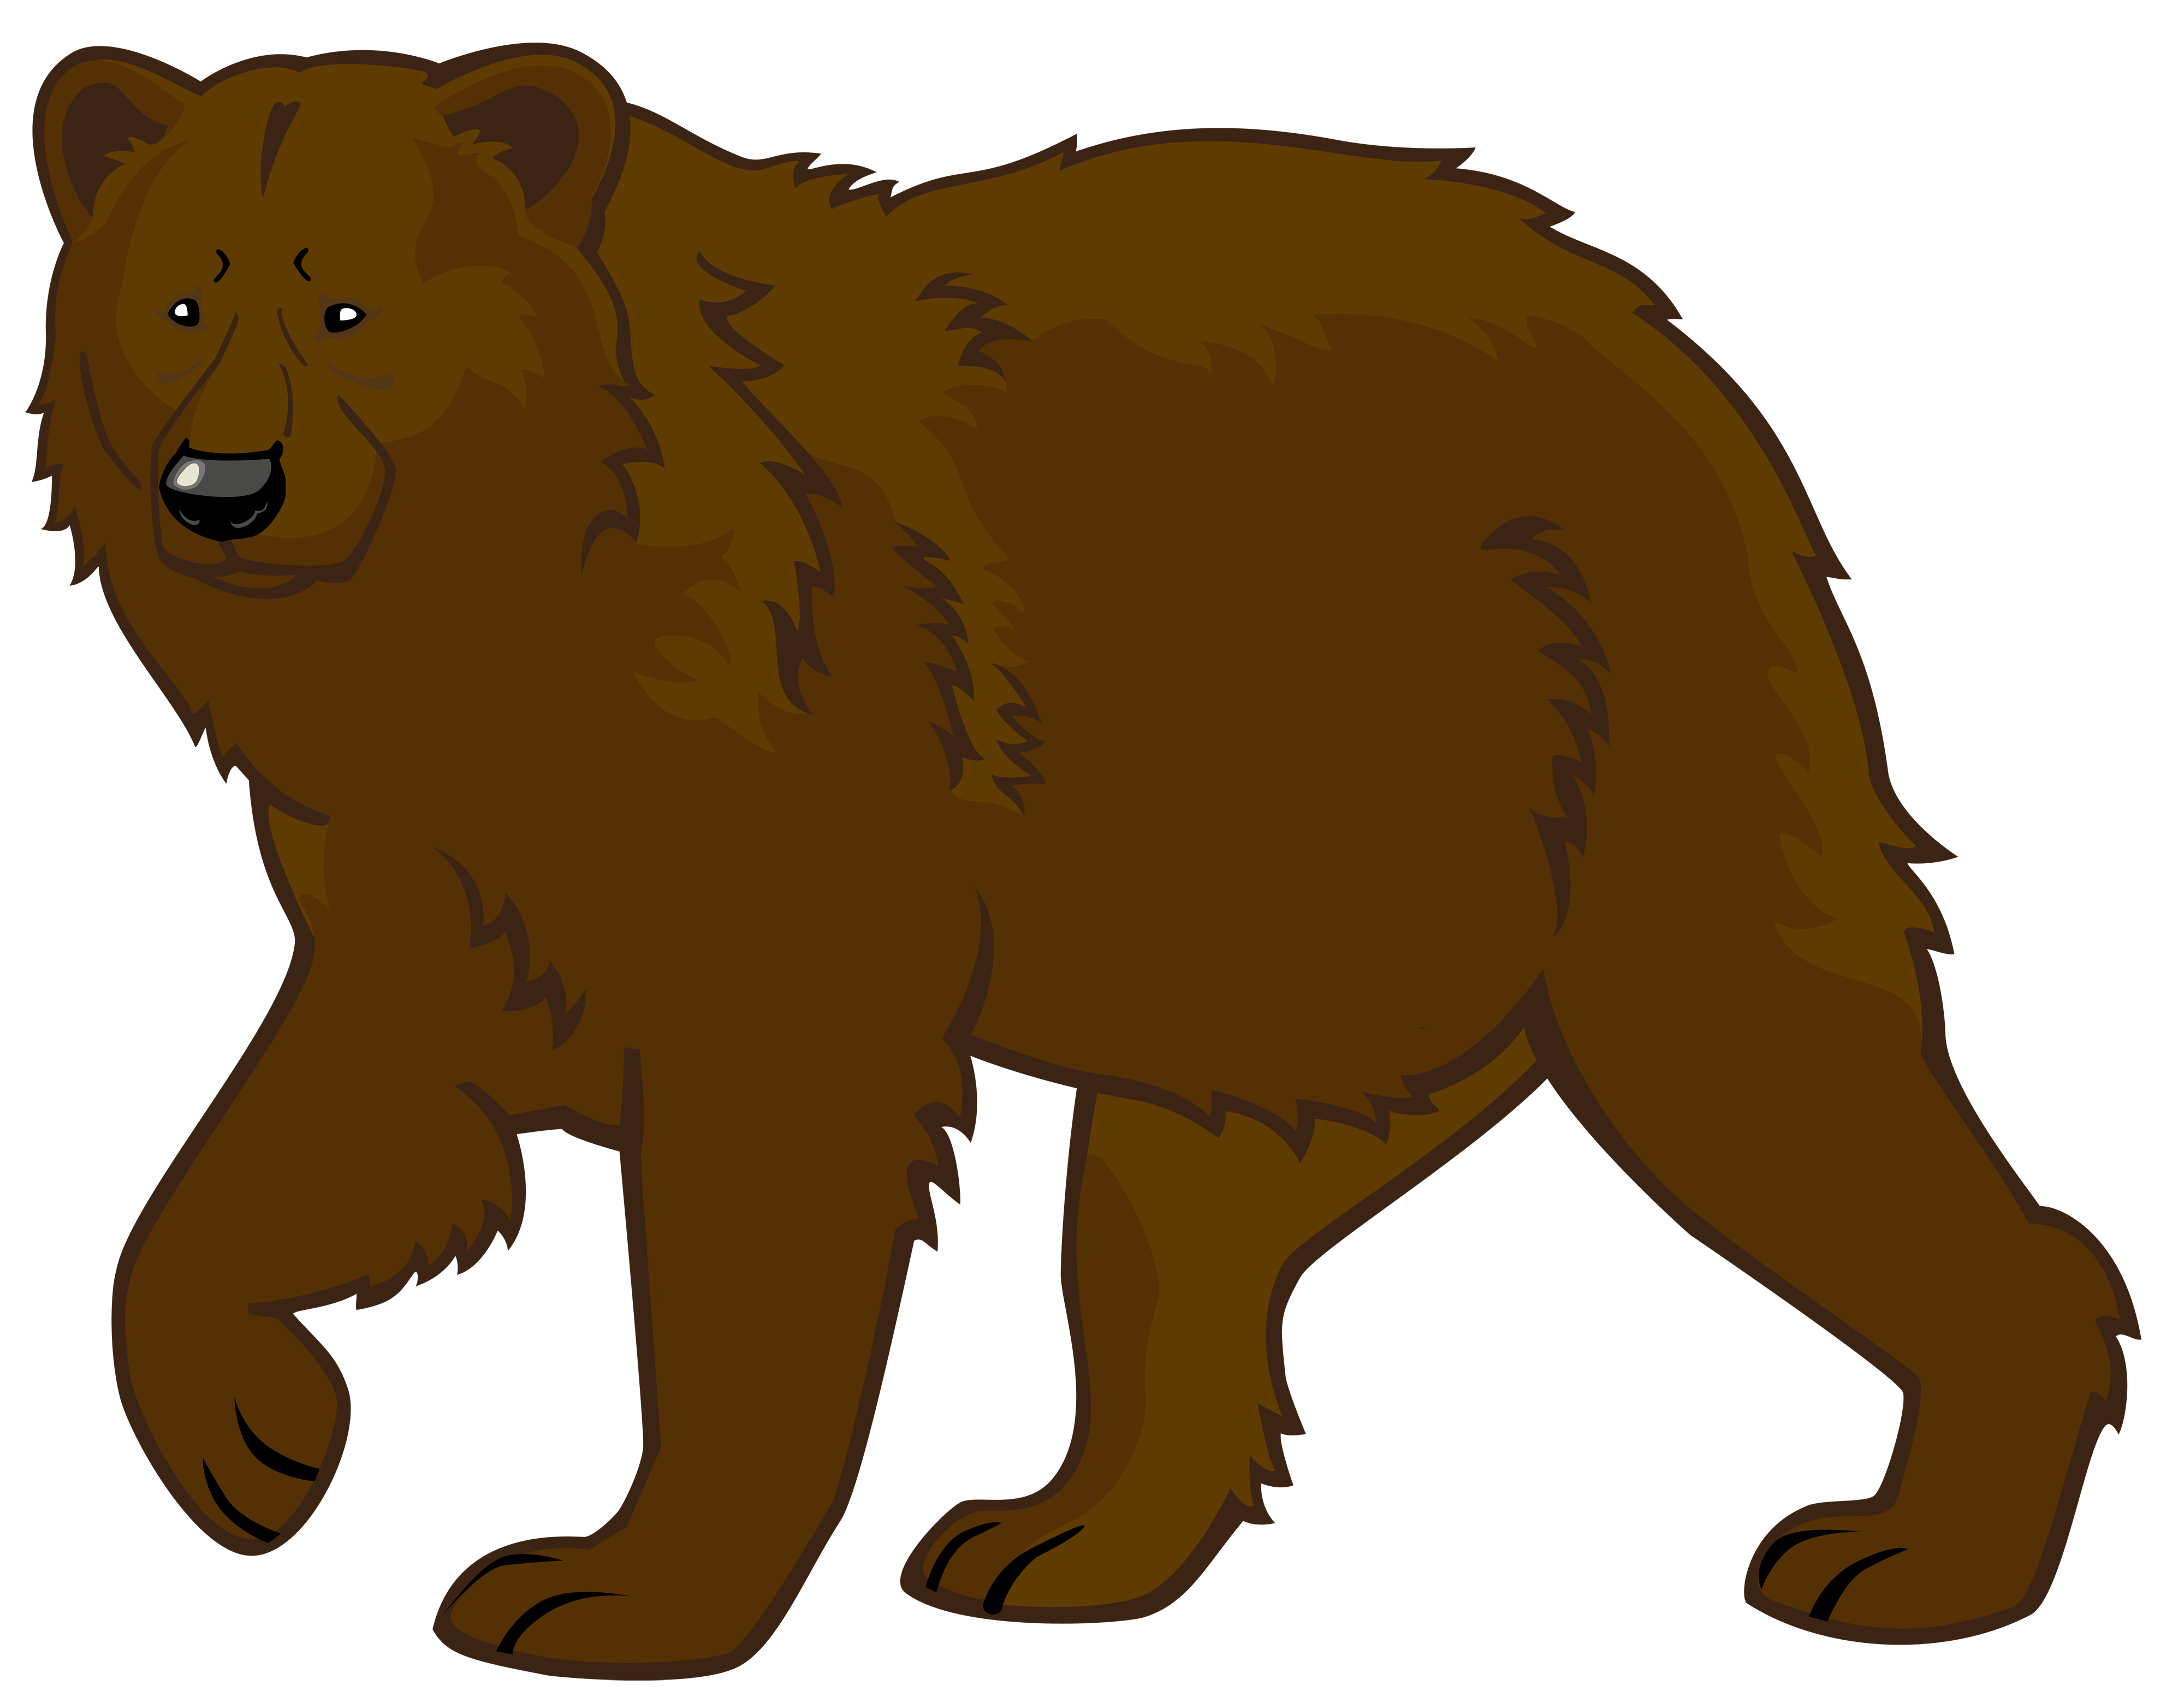 All about bears cliparts jpg freeuse library Bears clipart free 4 » Clipart Portal jpg freeuse library